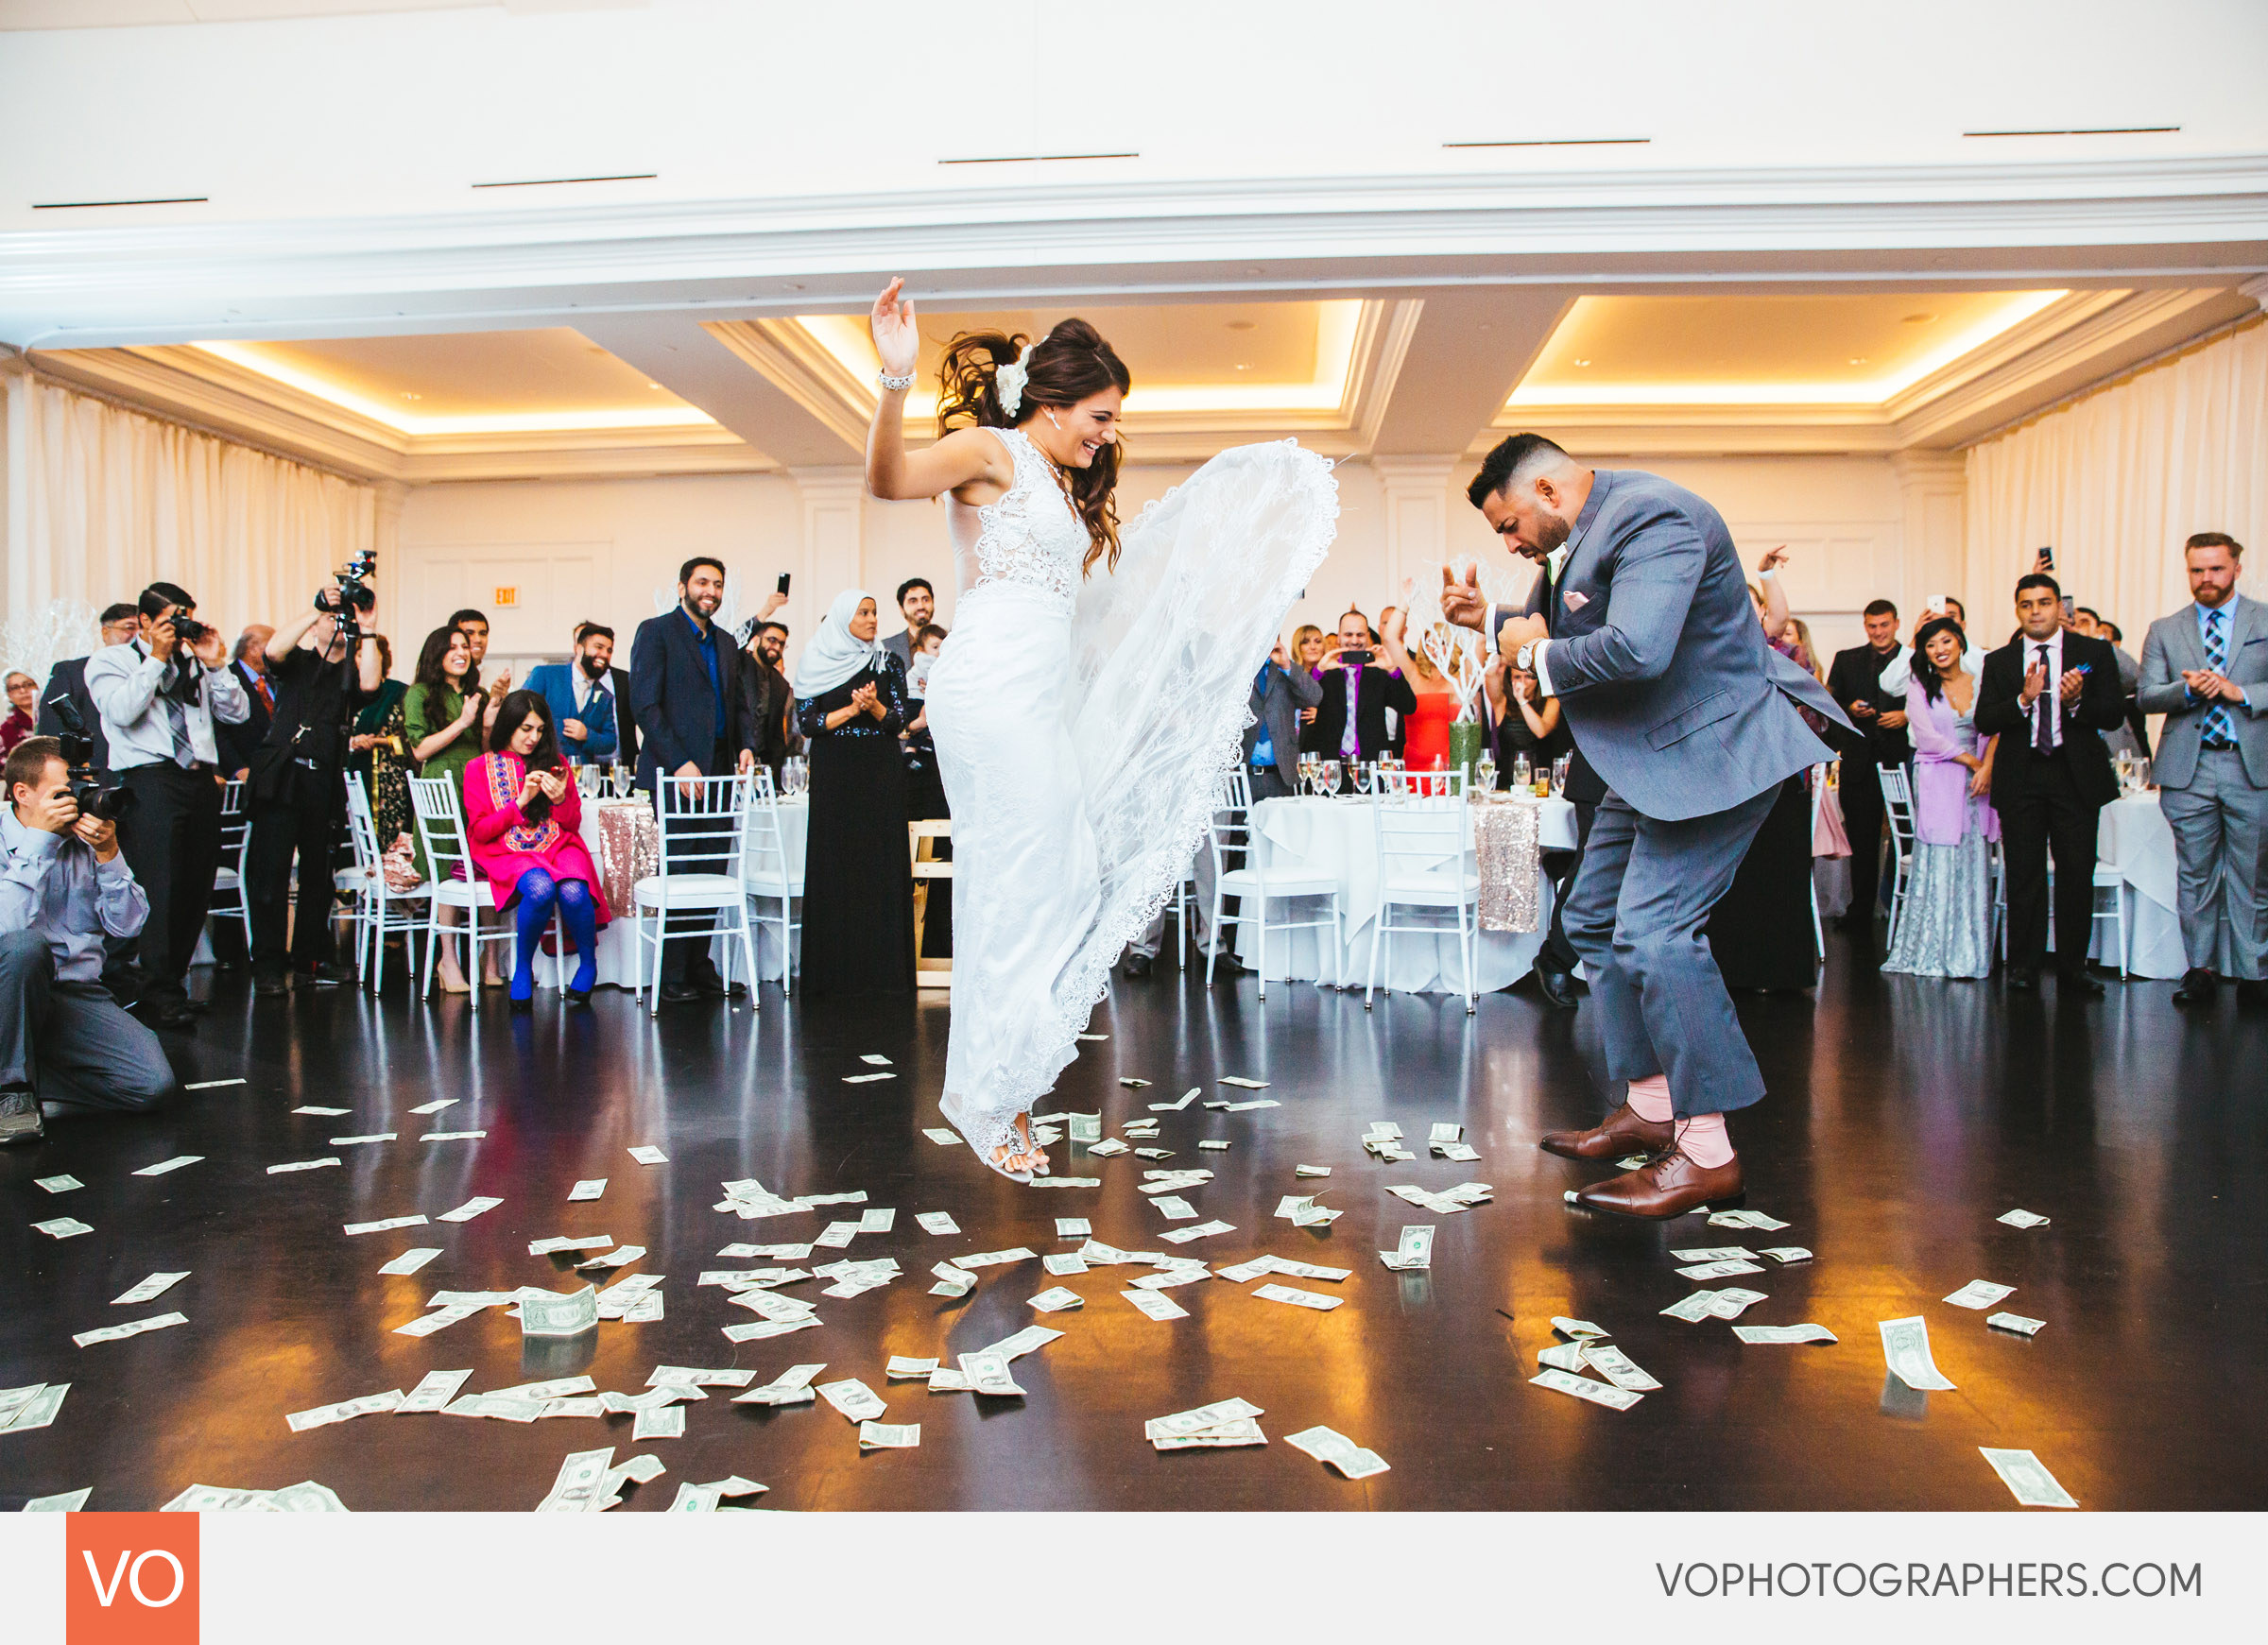 Oriana-Barem-Lakeview-Pavilion-Wedding-0035